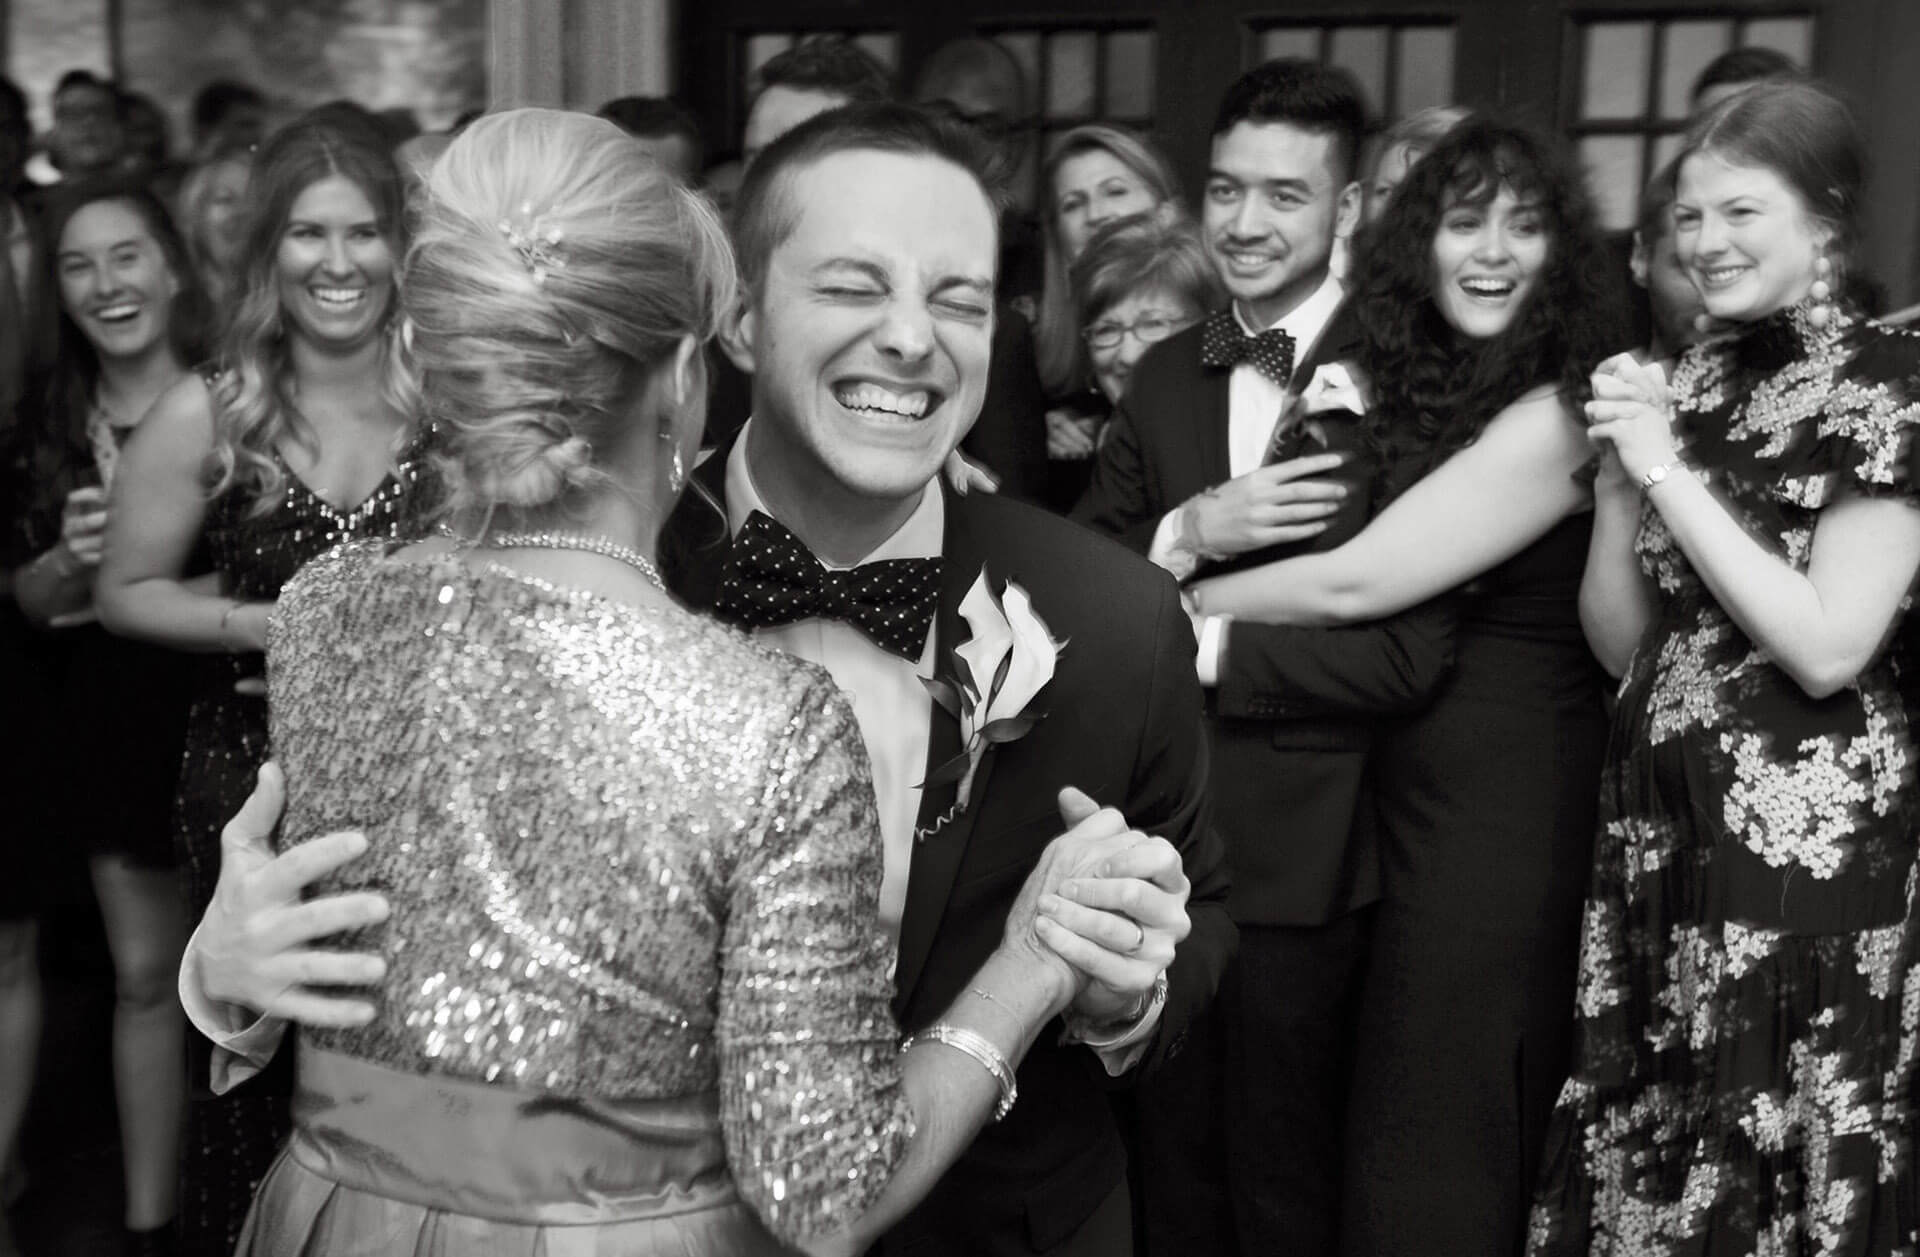 Fun, candid wedding photojournalism moments like this mother and son dance is what being able to capture spontaneous moments from weddings is what sets me apart from other wedding photographers.